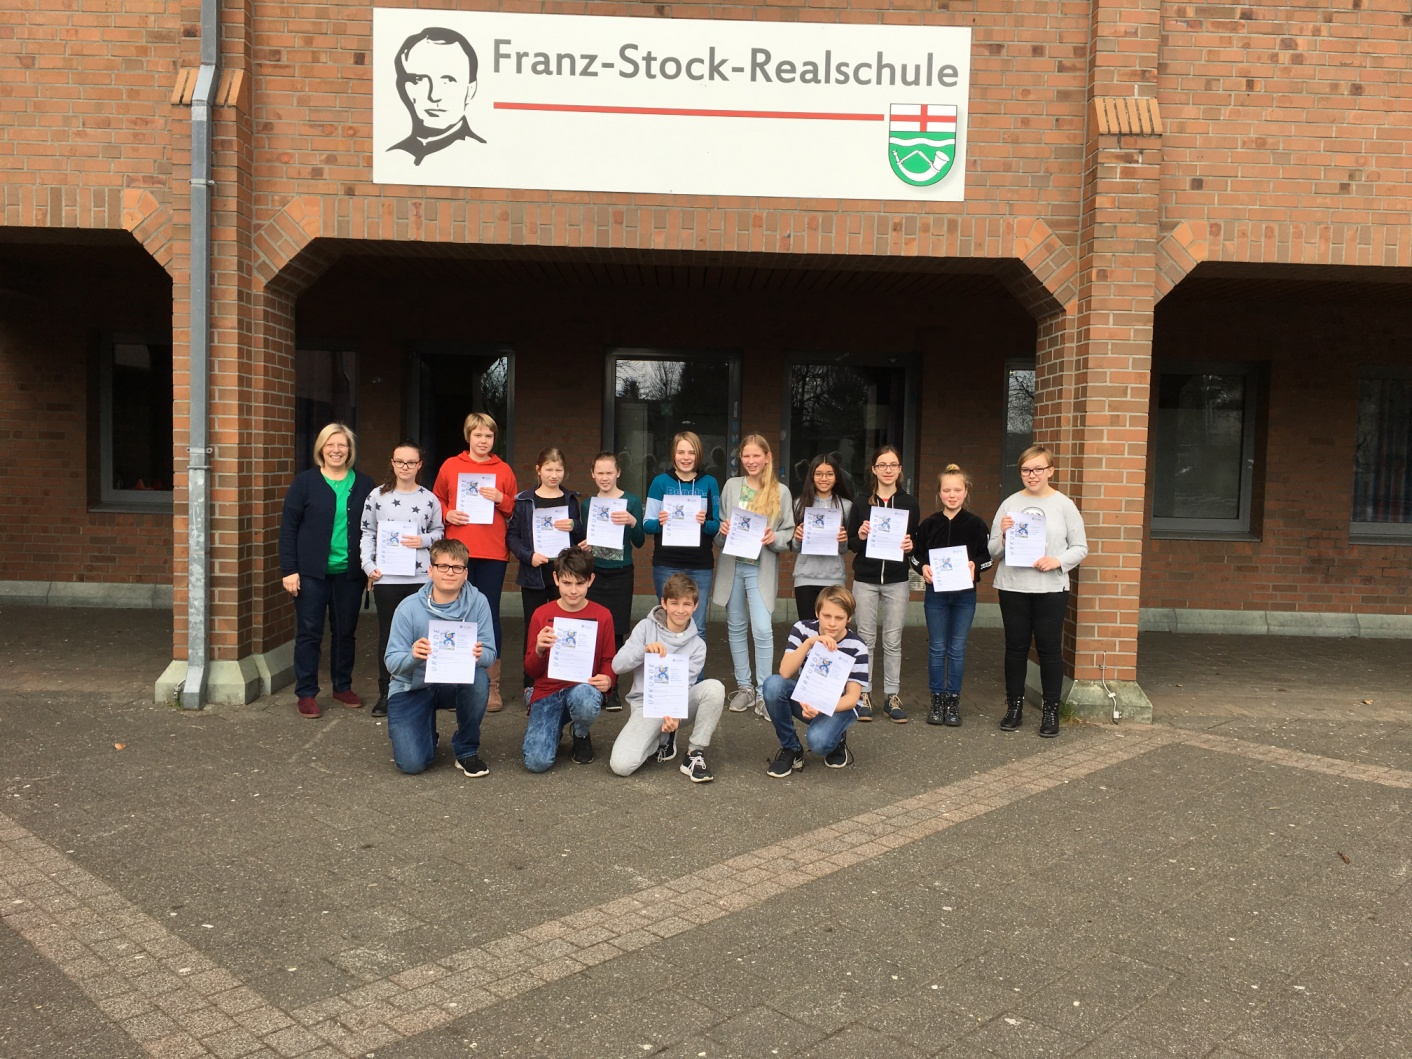 Franz-Stock-Realschule